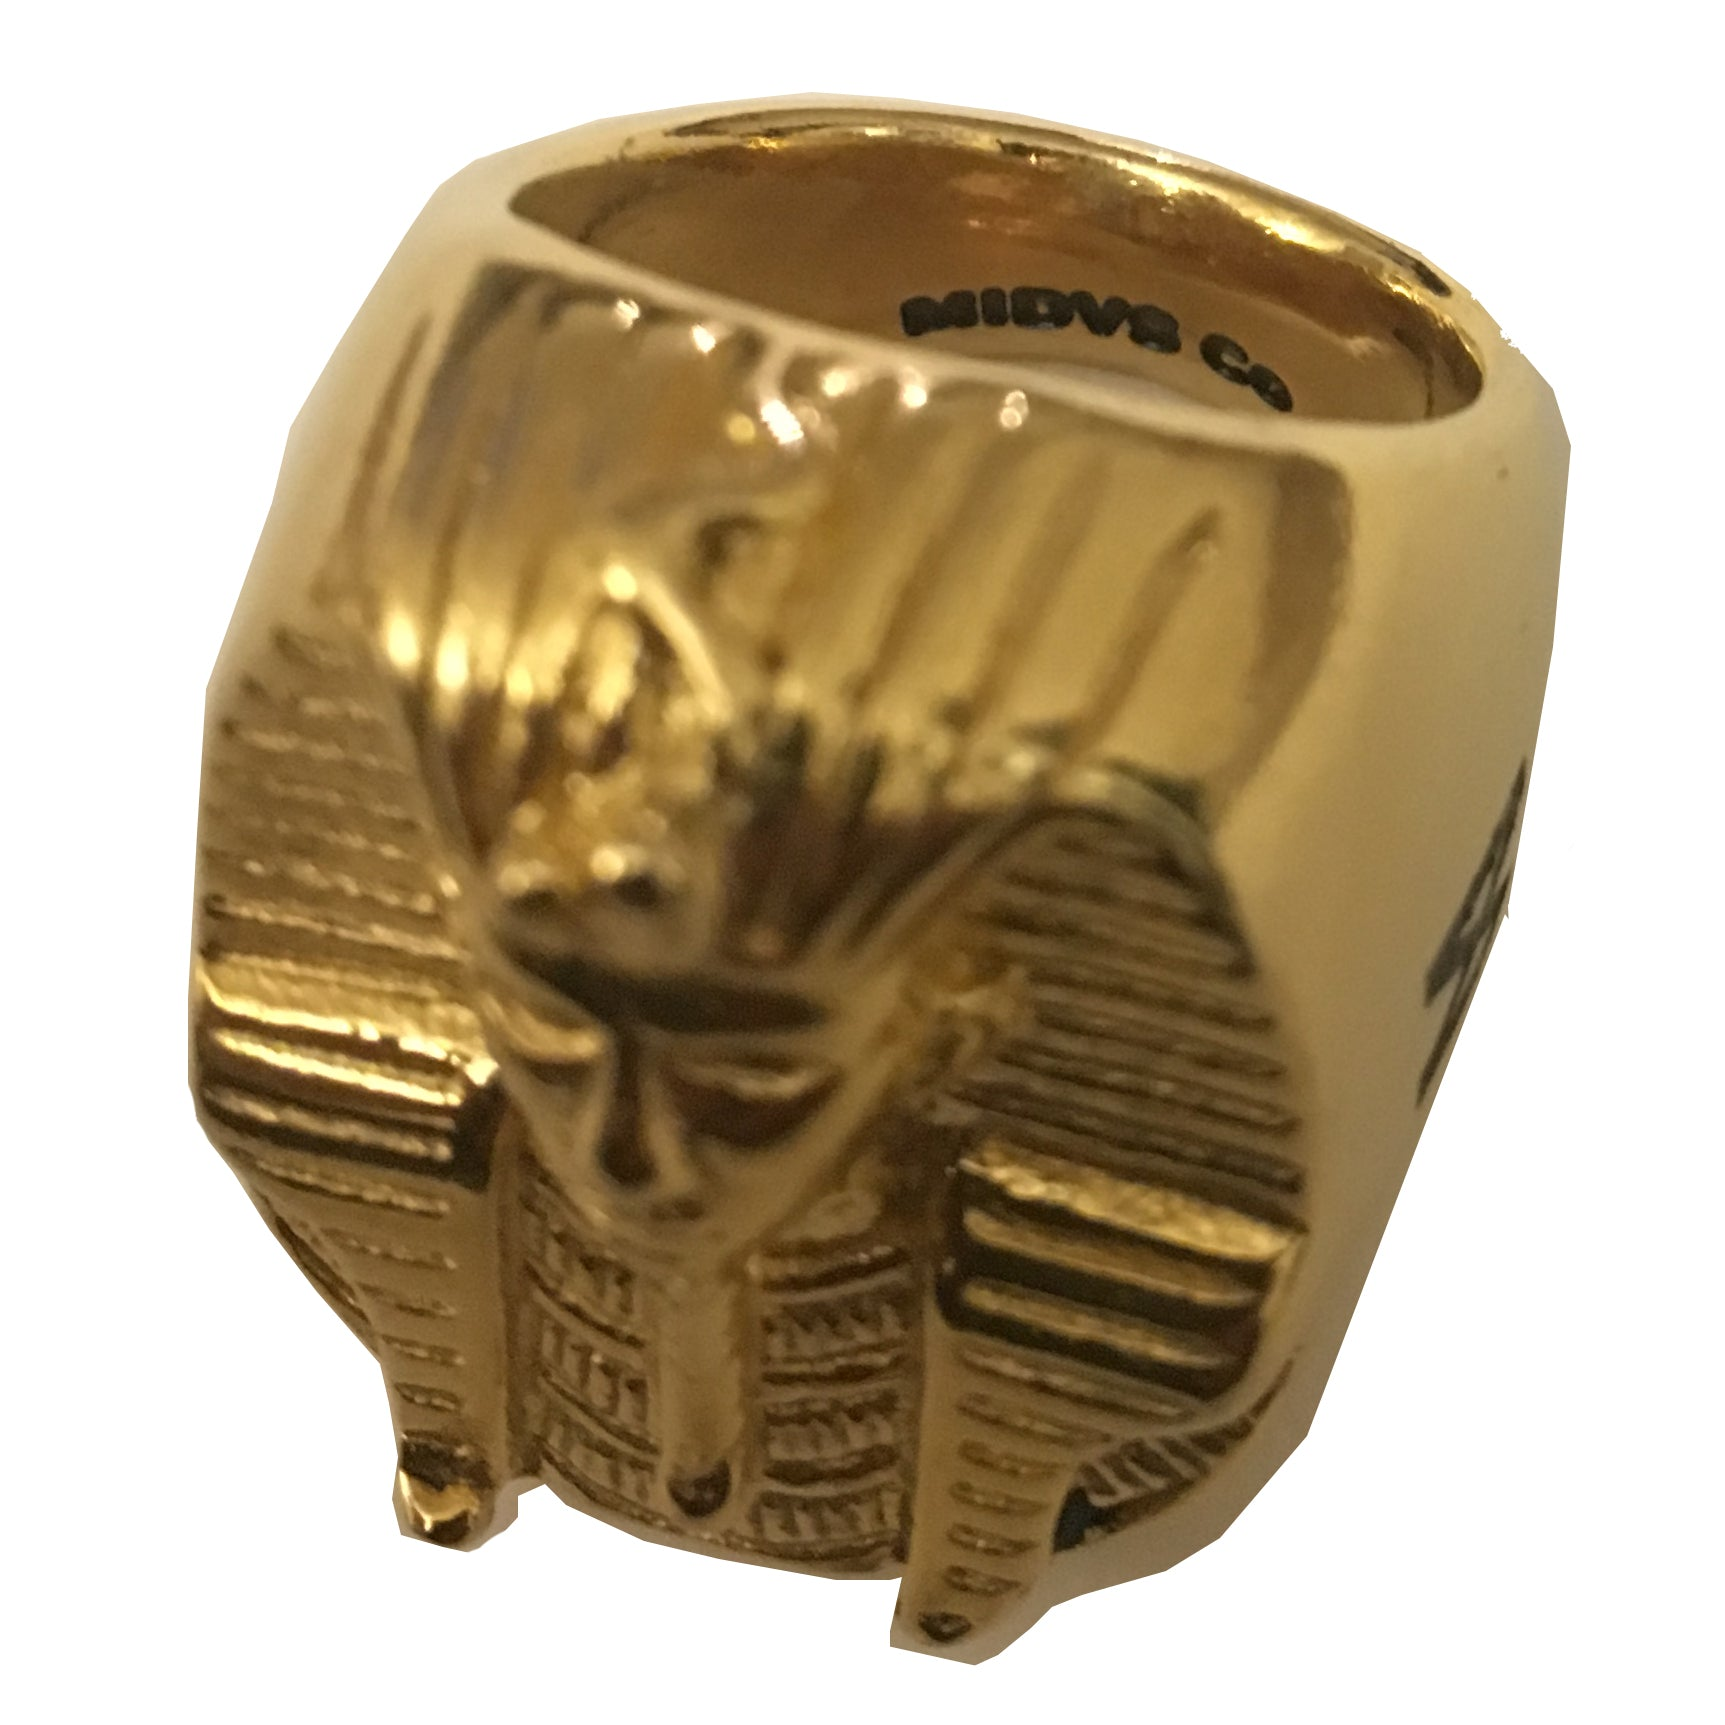 The 'Rulers' Pharoah Head Ring - 18kt Gold